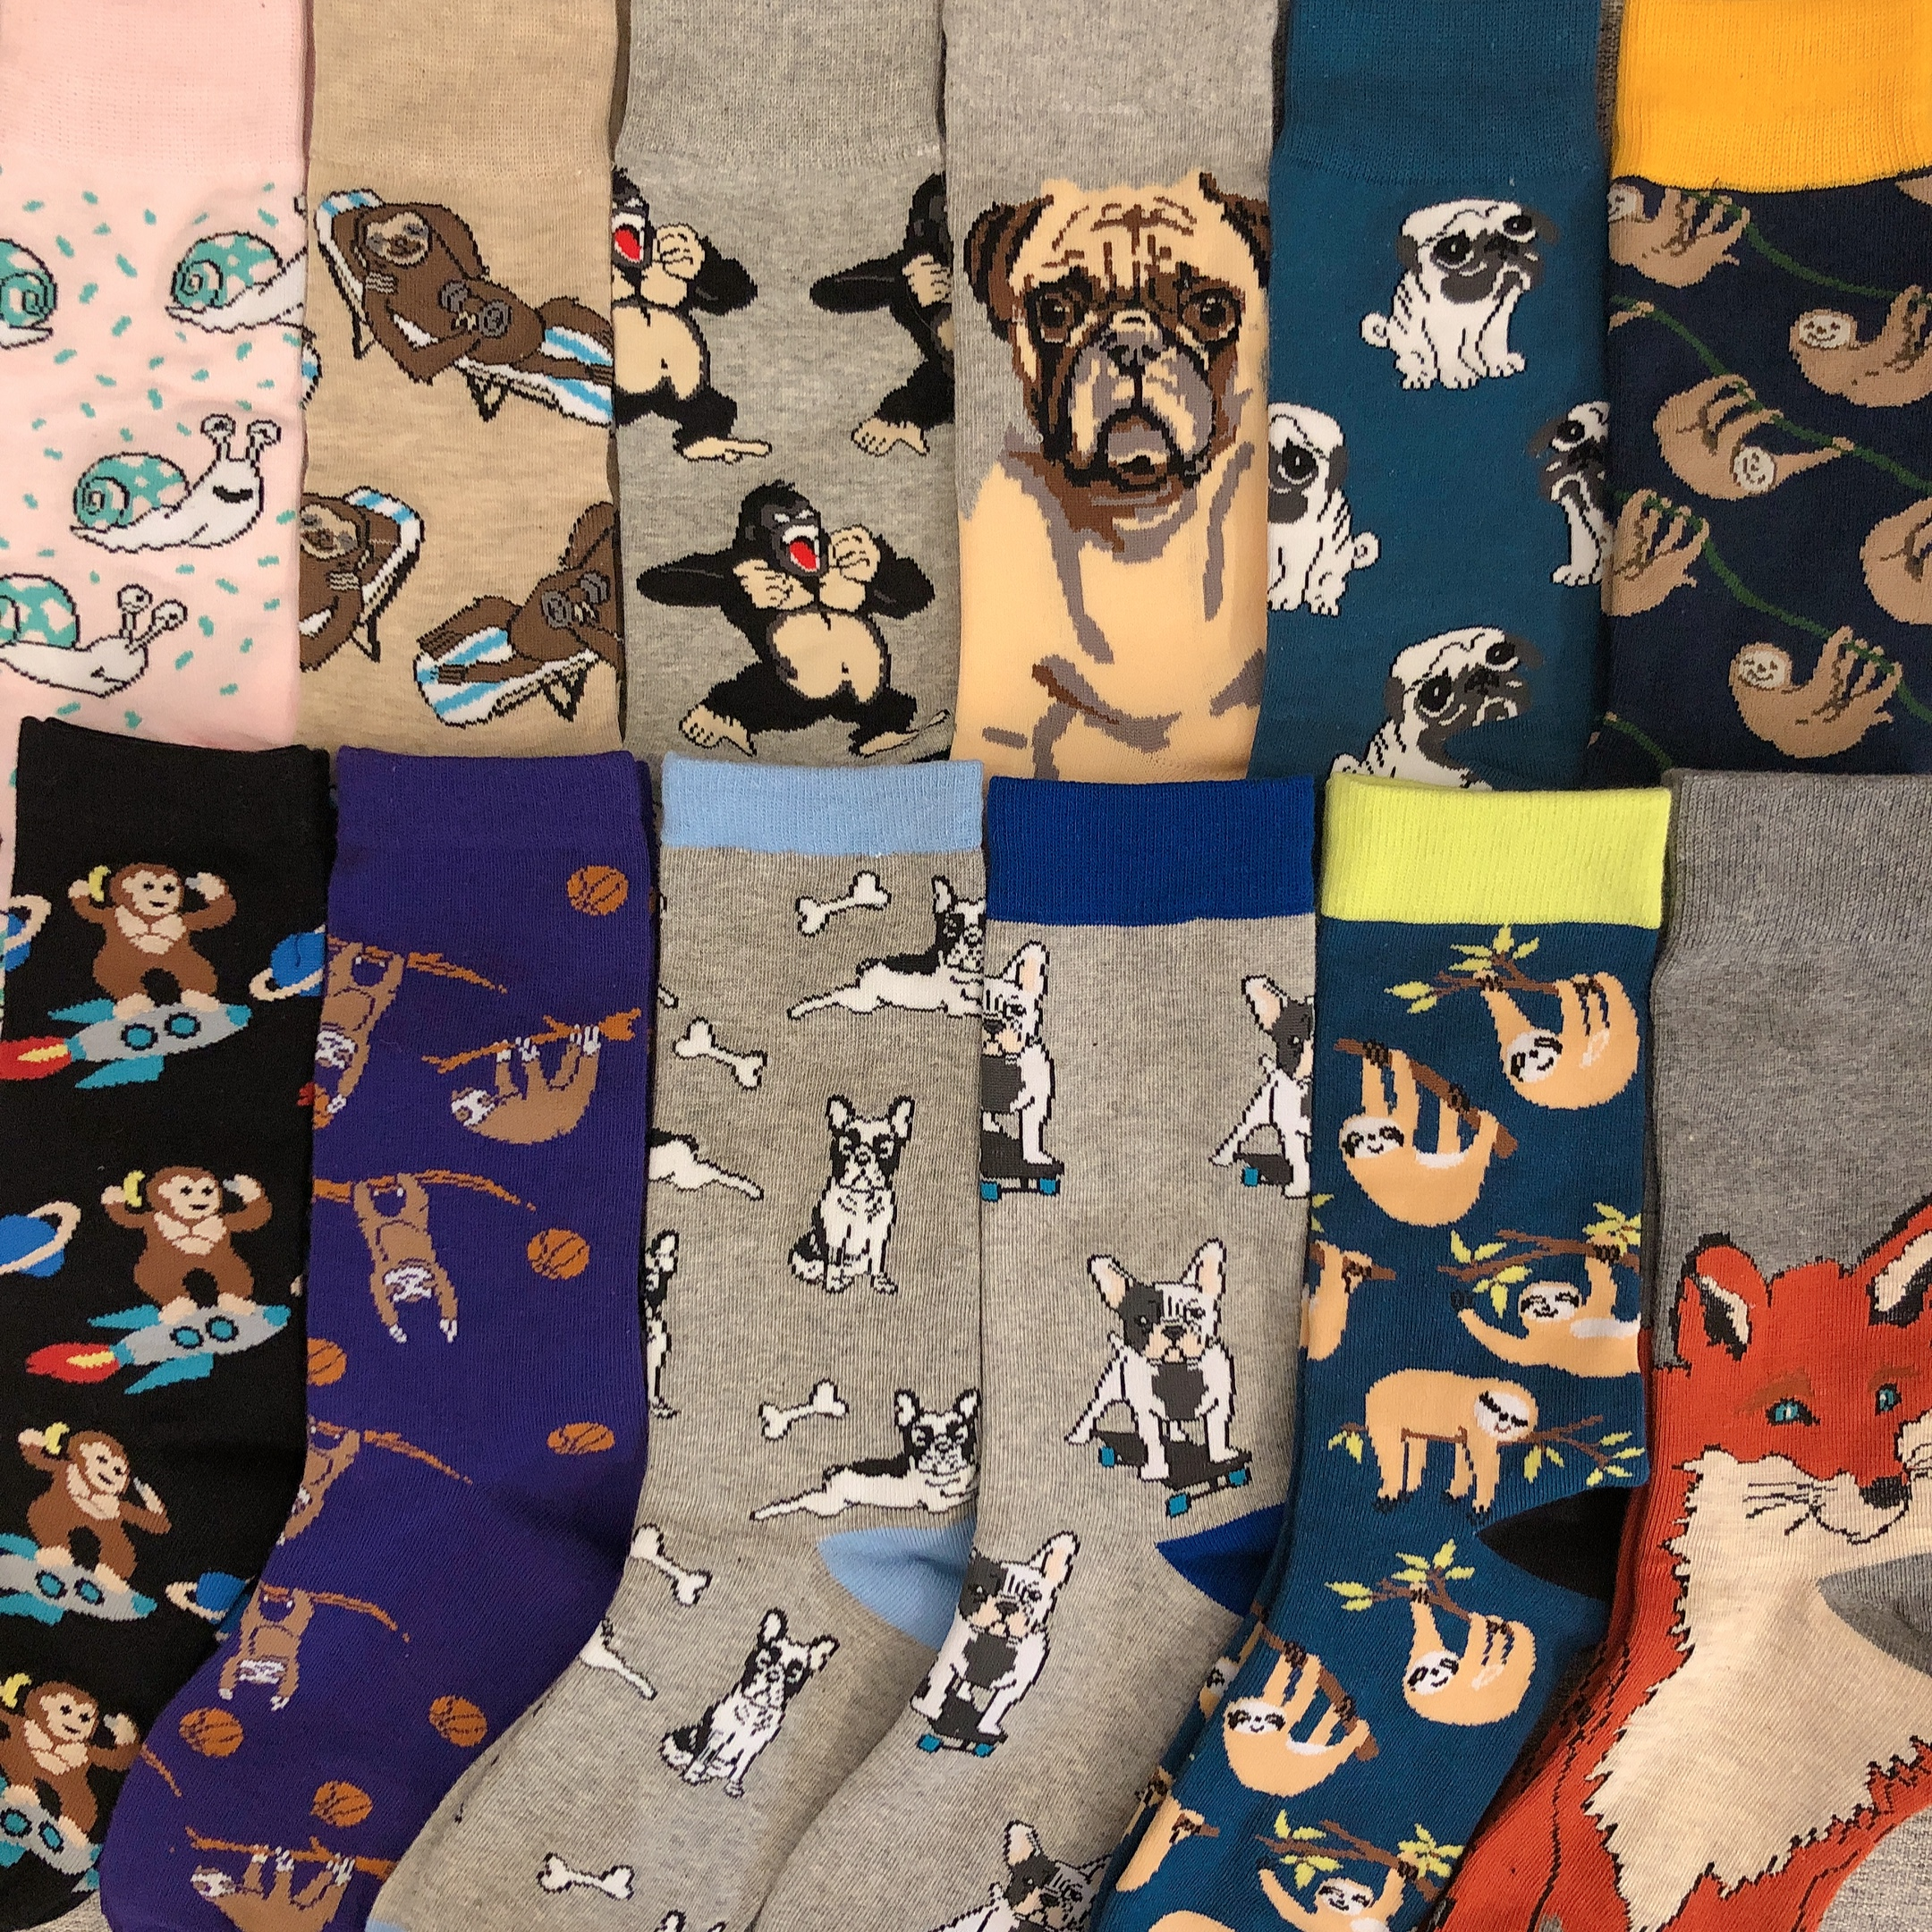 Adult Mid Calf Crew Fashion Funny Socks Chimpanzee Pug Bull Bulldog Sloth Snail Boston Terrier Monkey Dog Puppy Animal Dropship